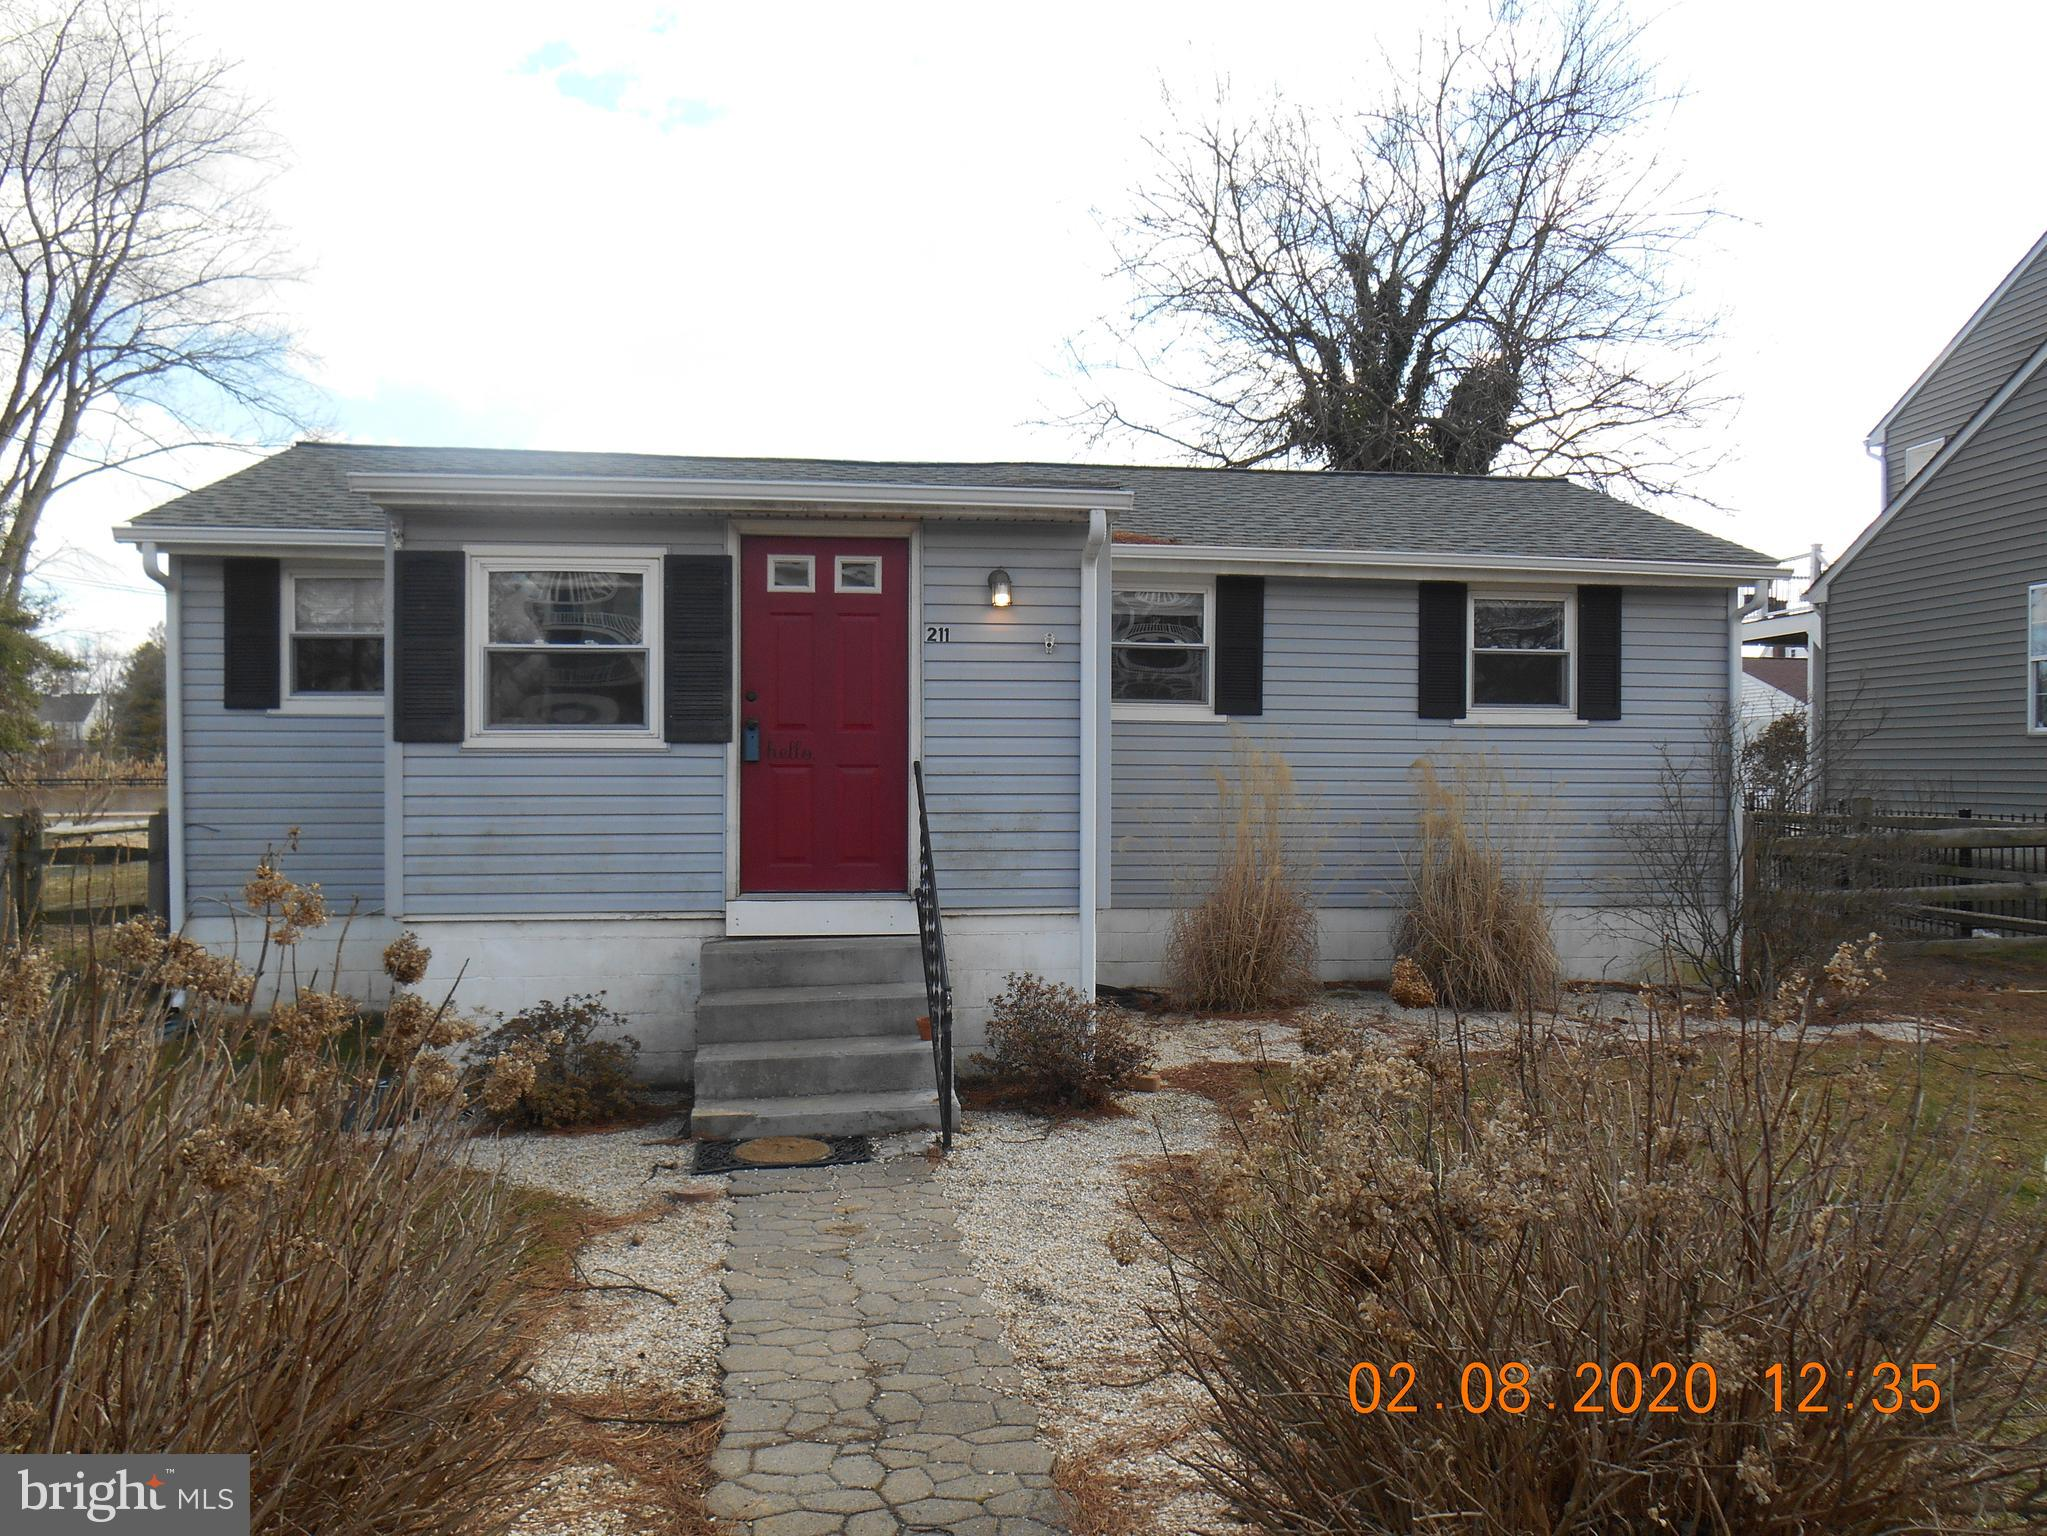 R-11349 Absolutely adorable 2 bedroom 1 bath home just down the street from the Delaware City Marina.  Large fenced in backyard with split rail fencing, large storage shed for extra storage.  Home has central air and natural gas heat, public sewer and public water.  Appliances will convey with the property.  Call for your appointment to see this cute home that has easy access to Rt. 1 and I-95.